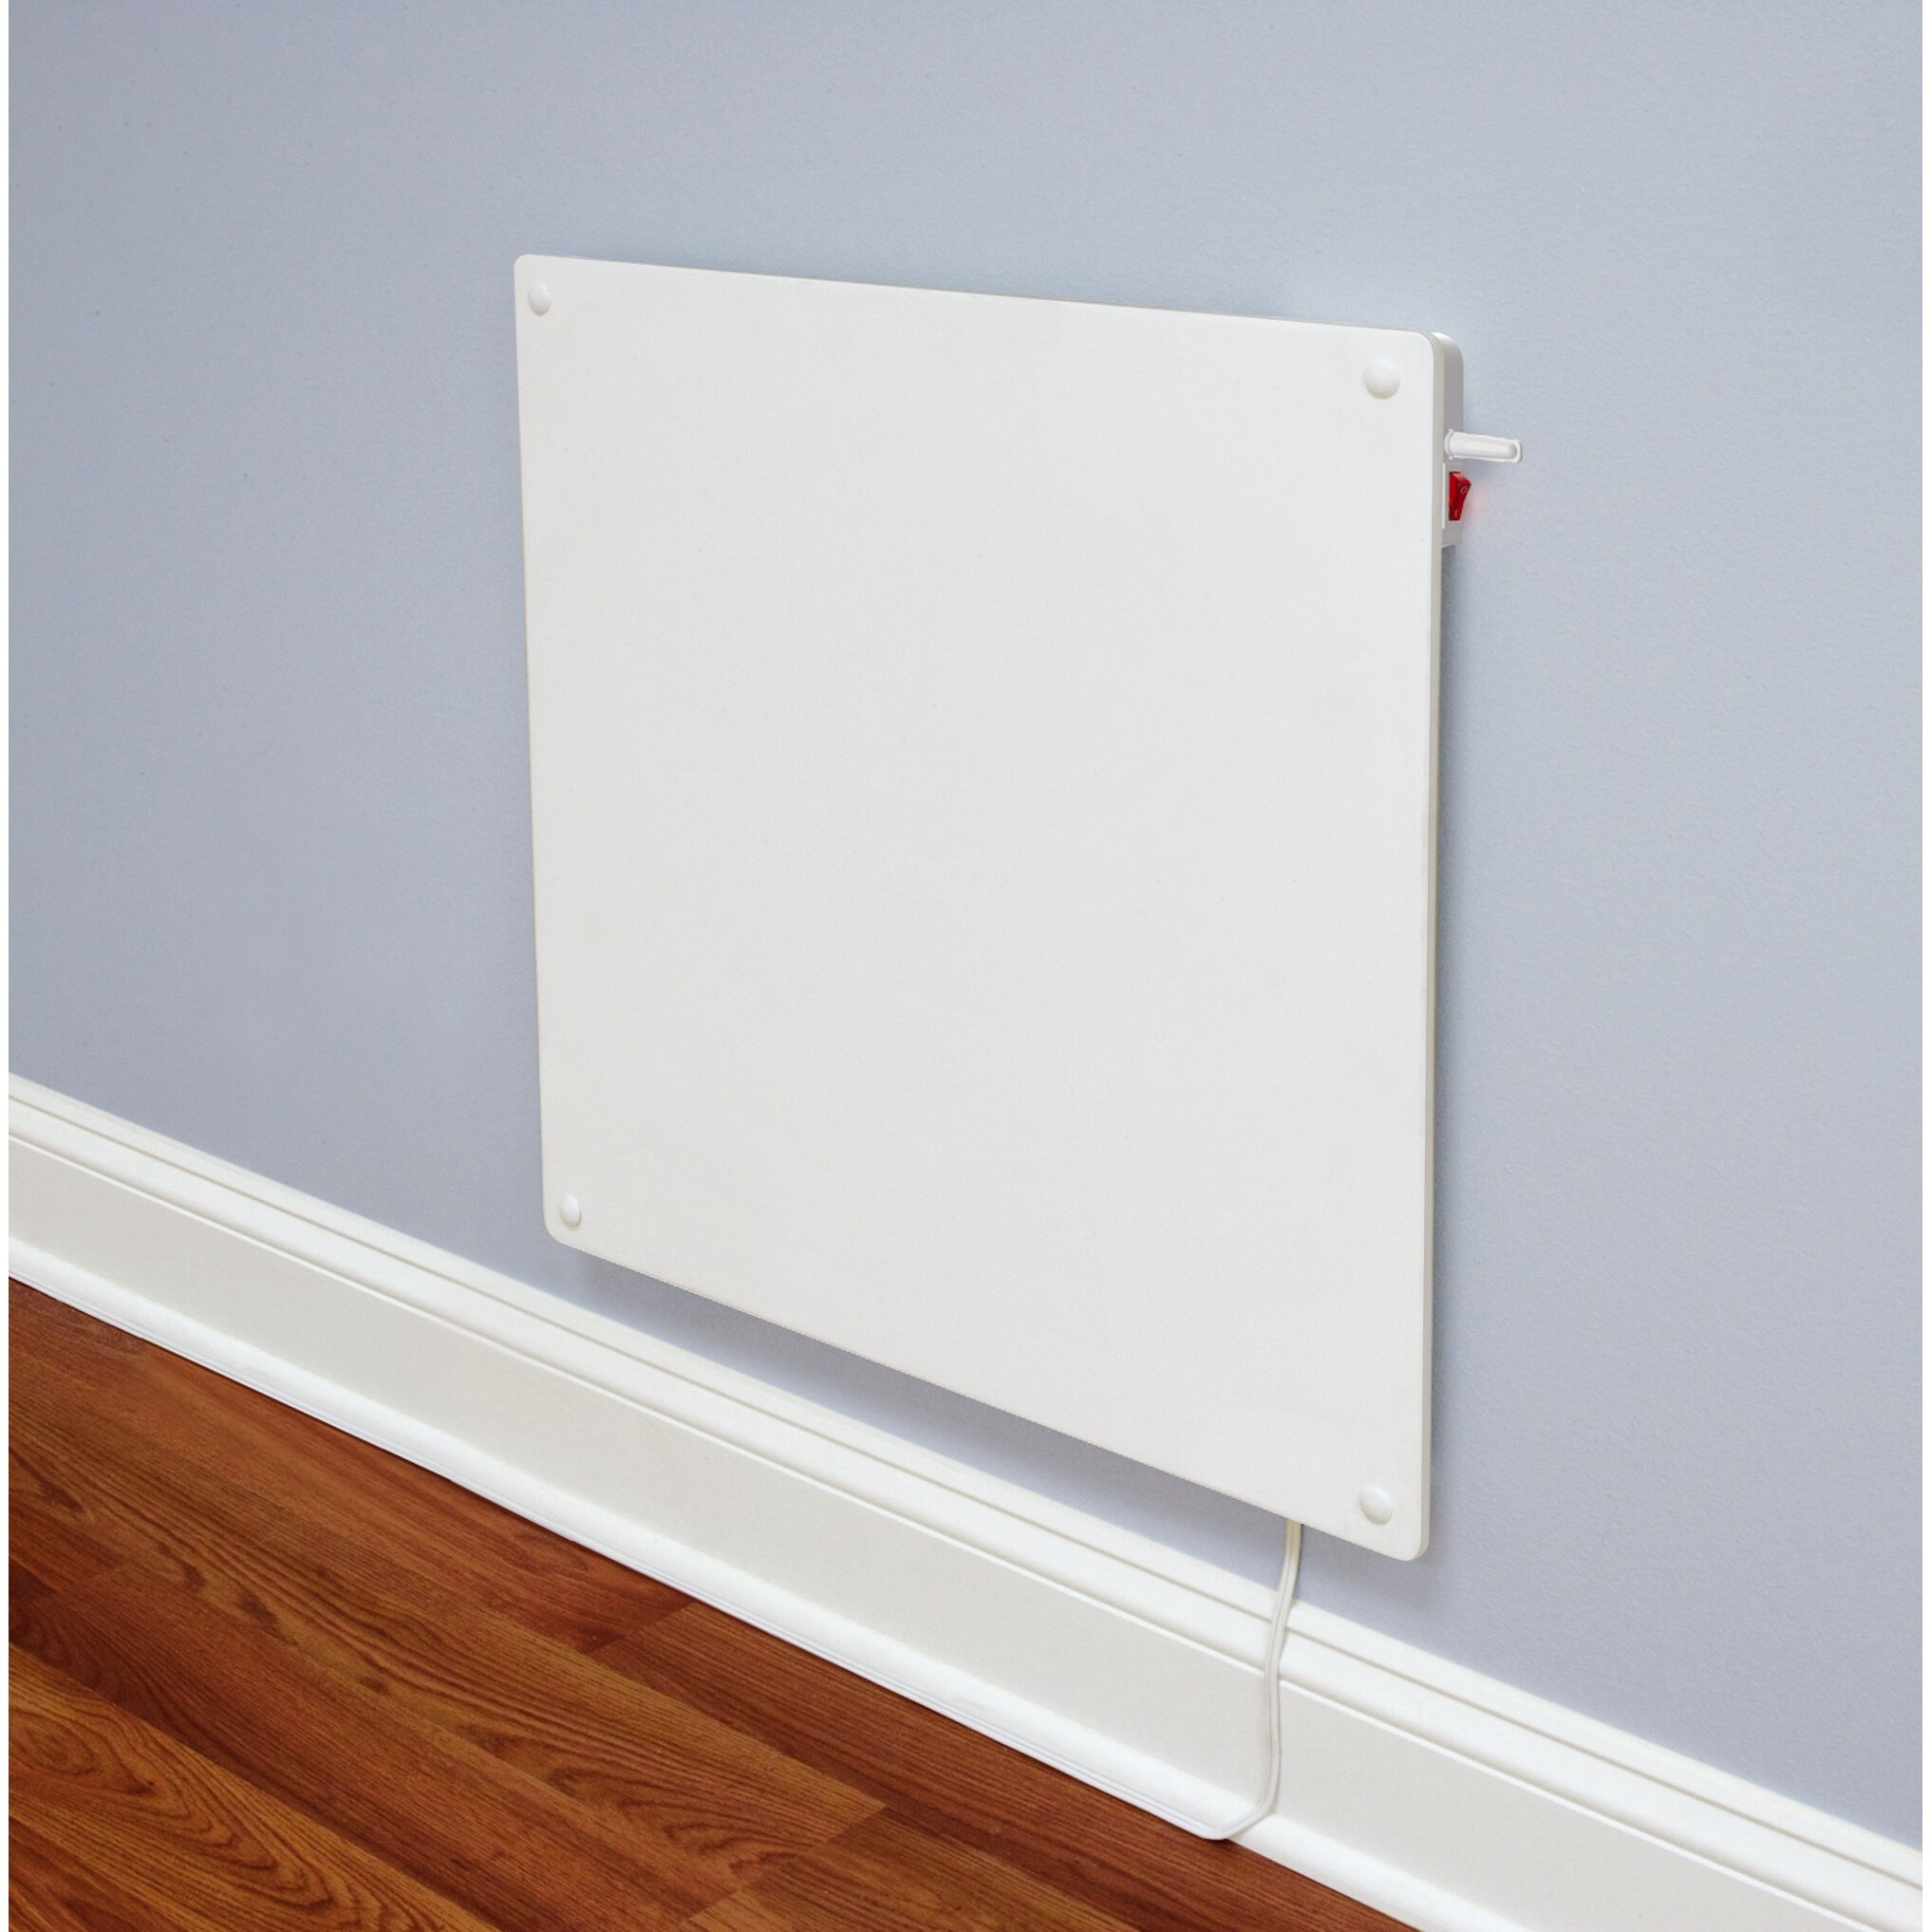 Ecoheater 1 364 Btu Wall Mounted Electric Convection Panel